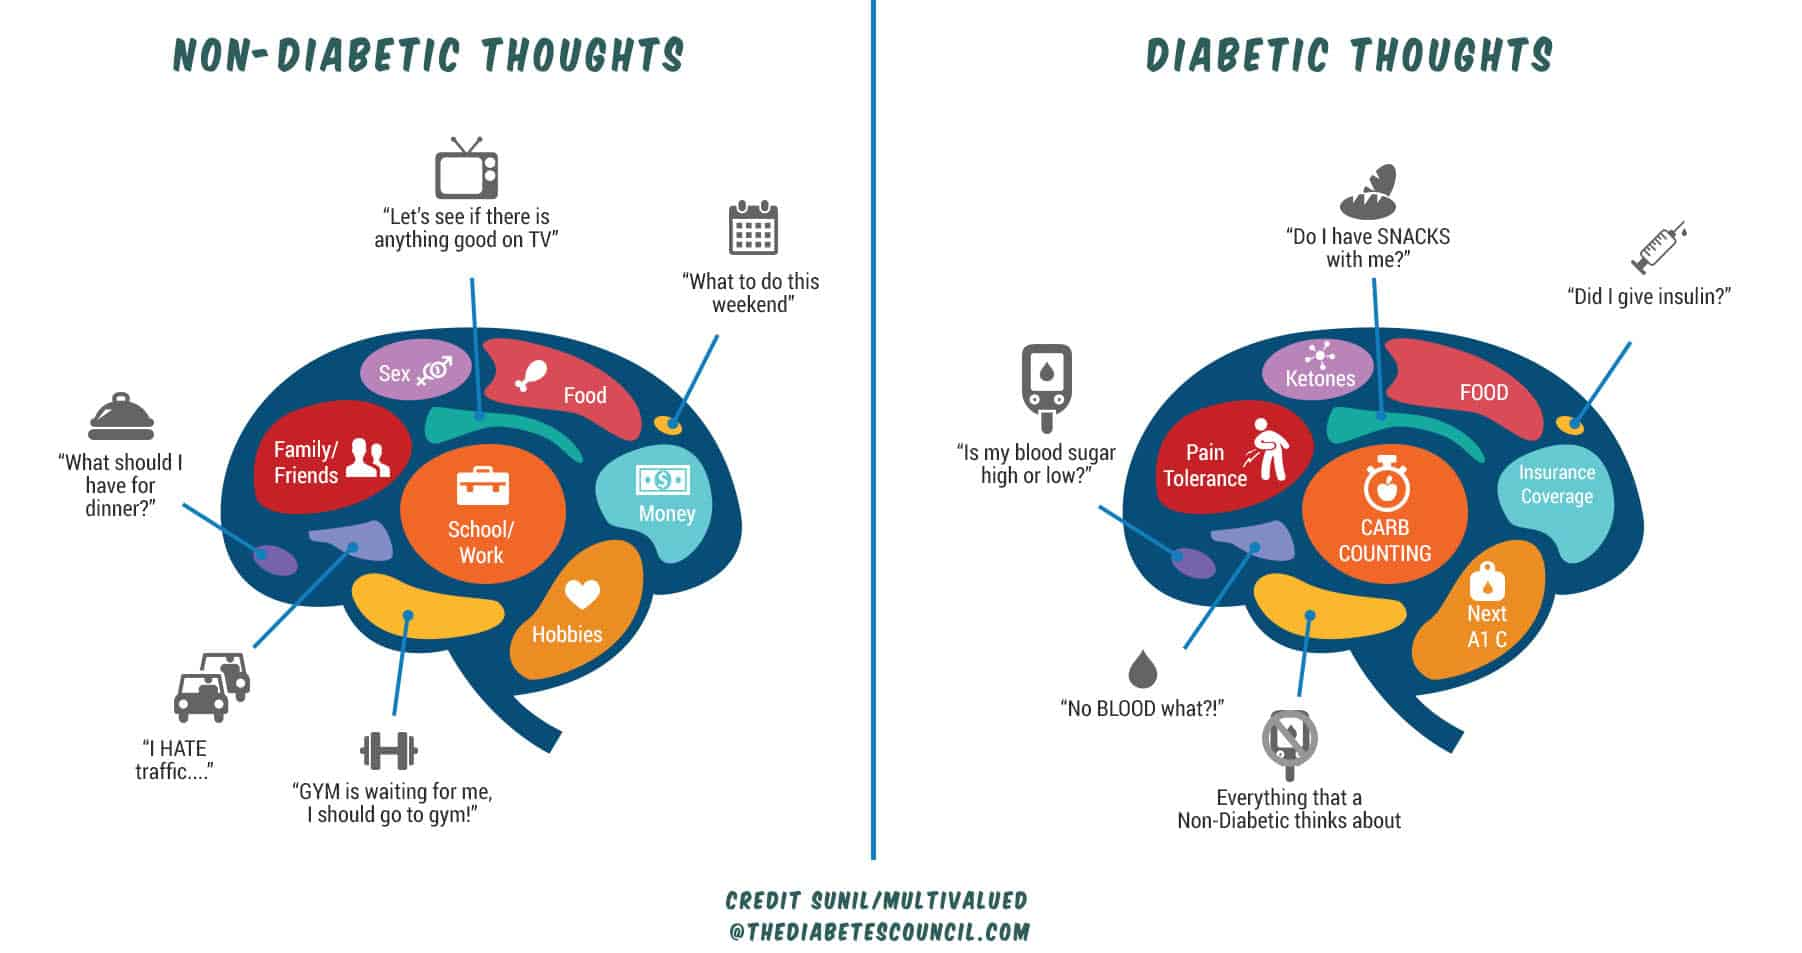 diabetic person vs non diabetic person thoughts